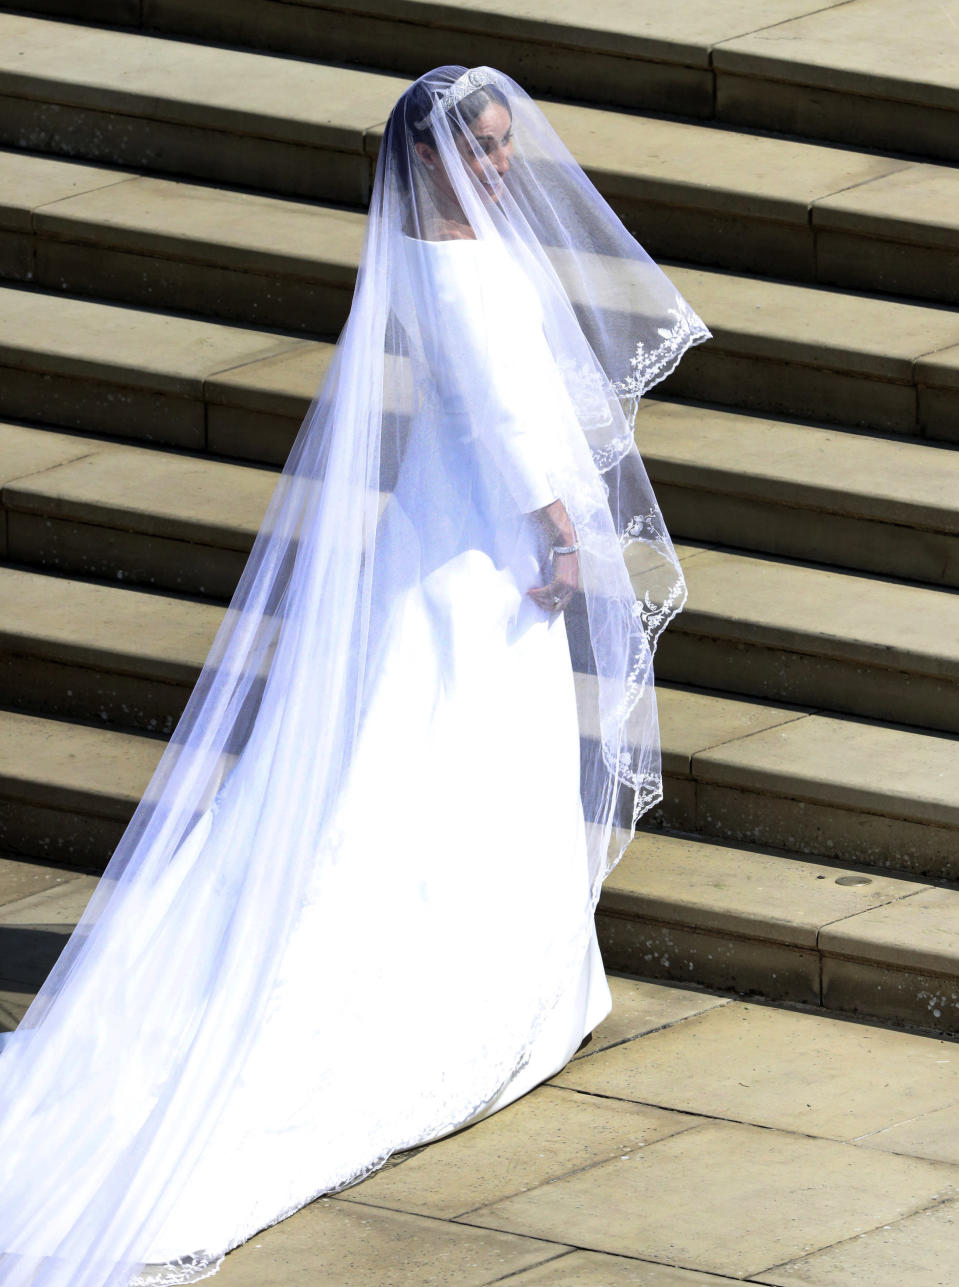 <p>In the lead up to her wedding, it was the most-talked about dress in fashion. And after? It won international acclaim.<br><br>Meghan Markle's custom Givenchy dress featured a bateau neckline and was made of double-cady silk. Her veil was crafted with floral designs with honoured all 53 countries in the Commonwealth.<br><br>The dress was deisgned by Clare Waight Keller, Givenchy's first ever artistic director – a nod to feminism if we ever saw one.<br>[Photo: Getty] </p>